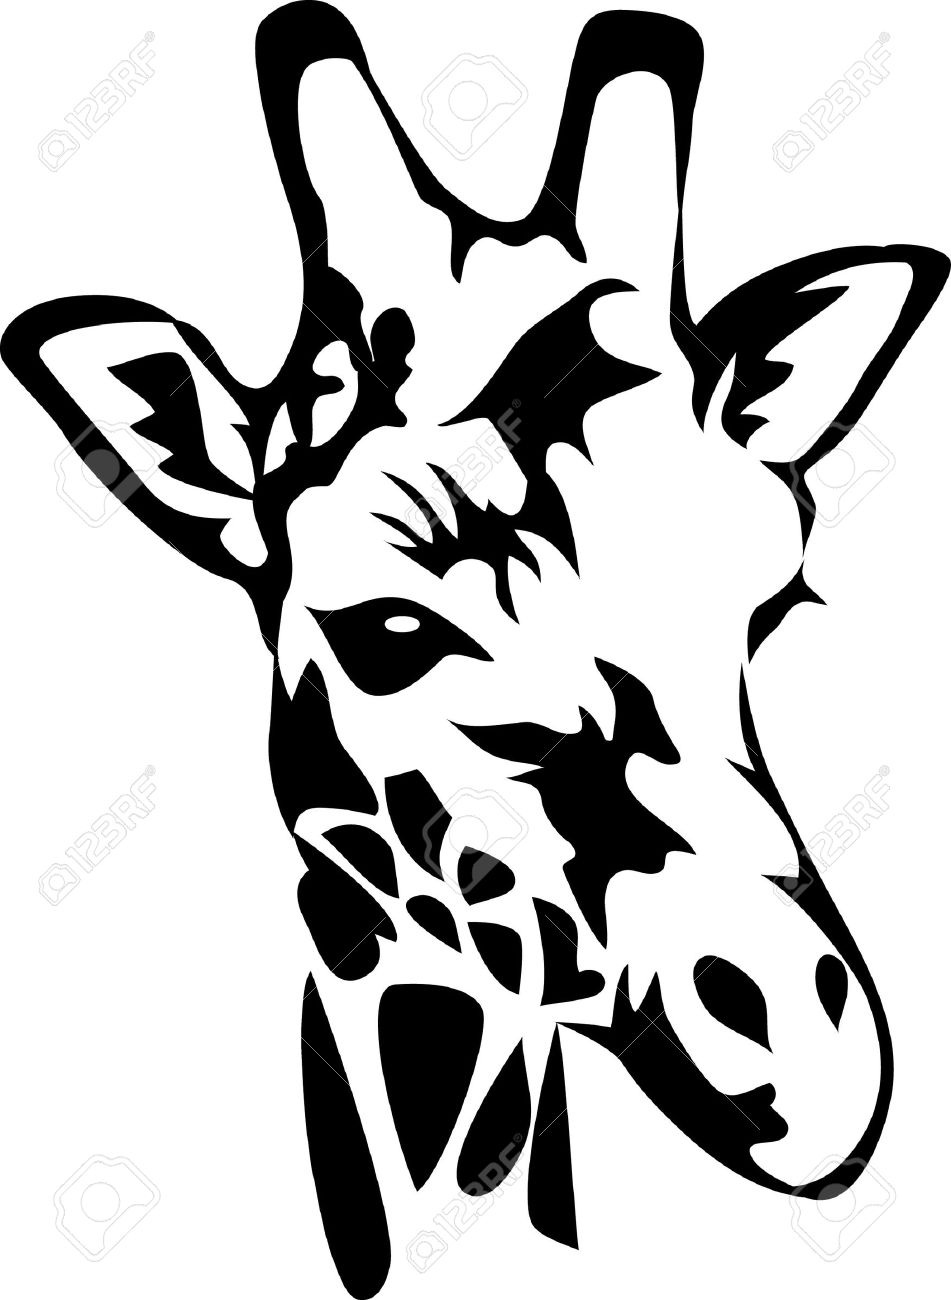 951x1300 Giraffe Face Drawing 2,183 Giraffe Head Cliparts, Stock Vector